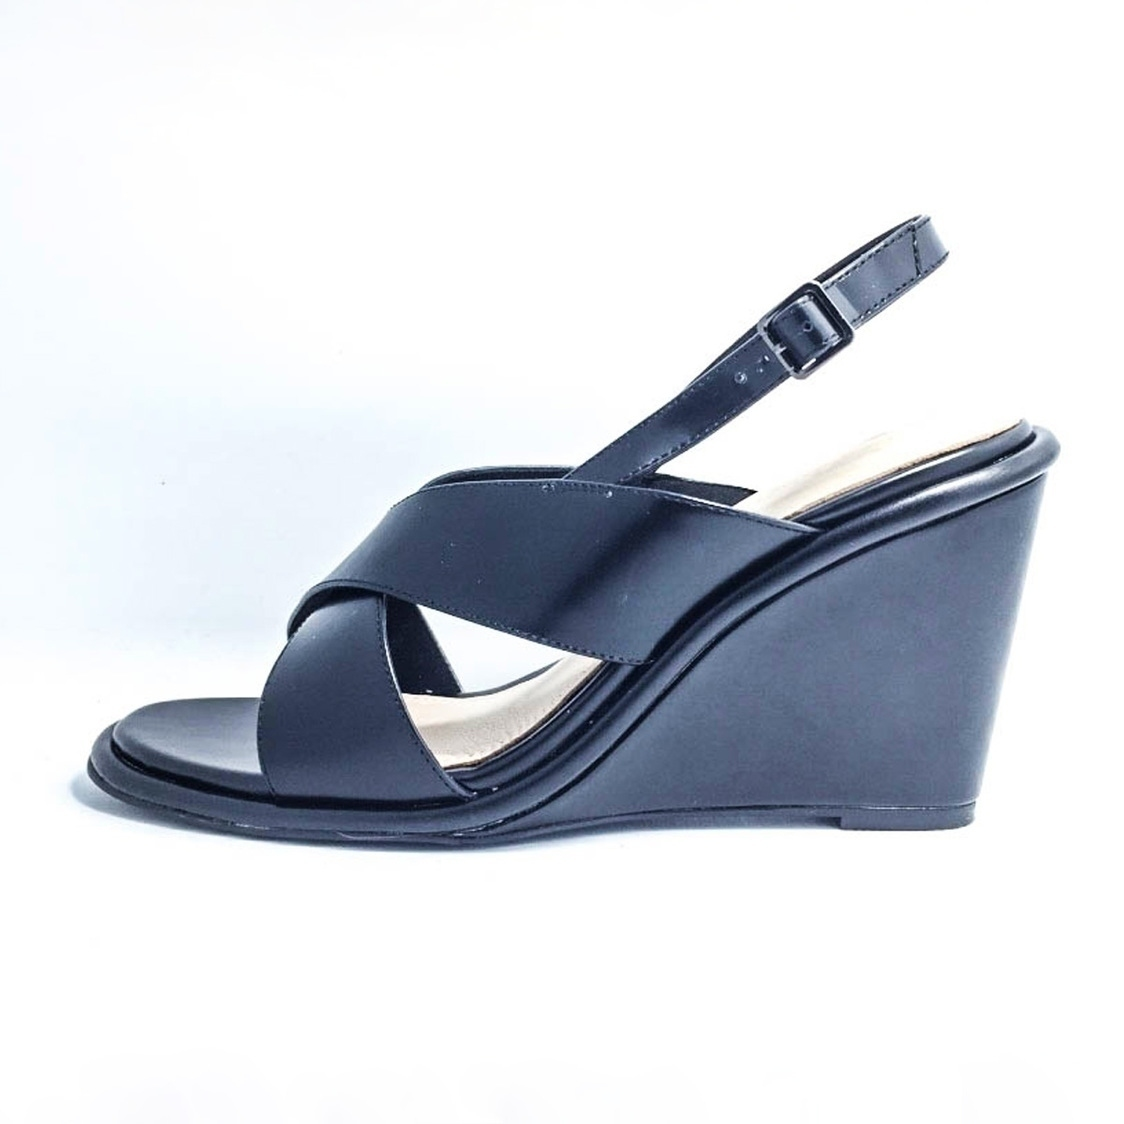 Box Leather Wedge Sandal - Black